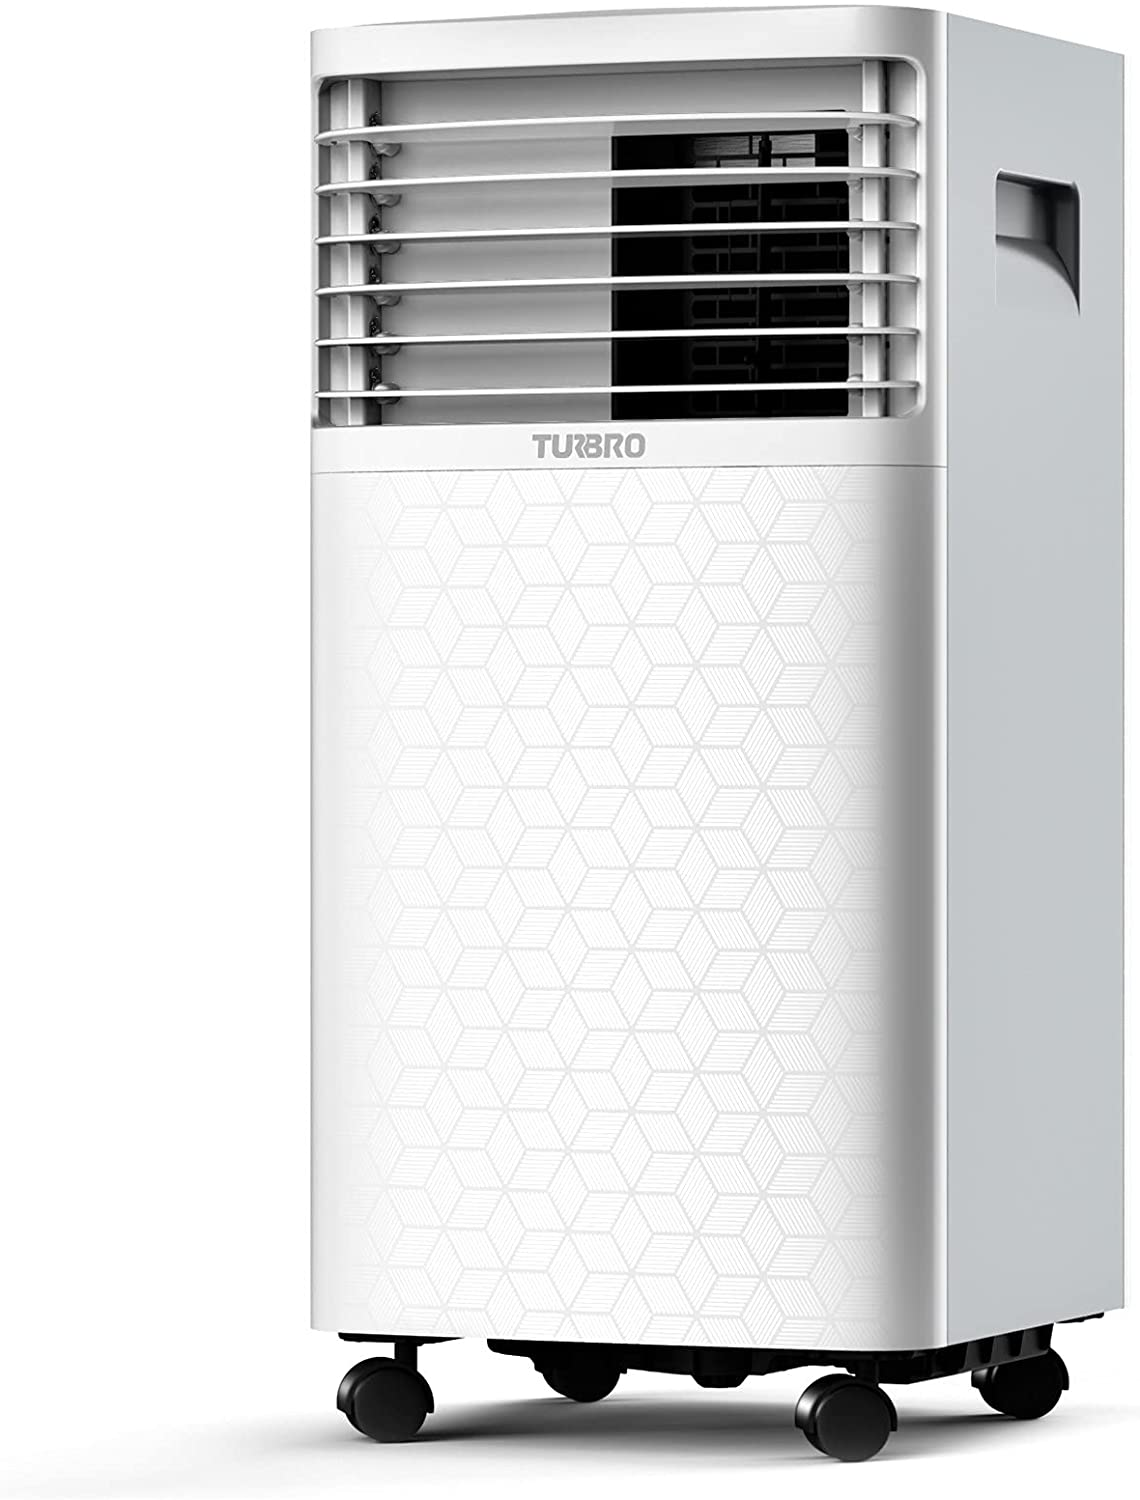 TURBRO Greenland 10,000 BTU Portable Air Conditioner, Dehumidifier and Fan, 3-in-1 Floor AC Unit for Rooms up to 400 Sq Ft, Sleep Mode, Timer, Remote Included